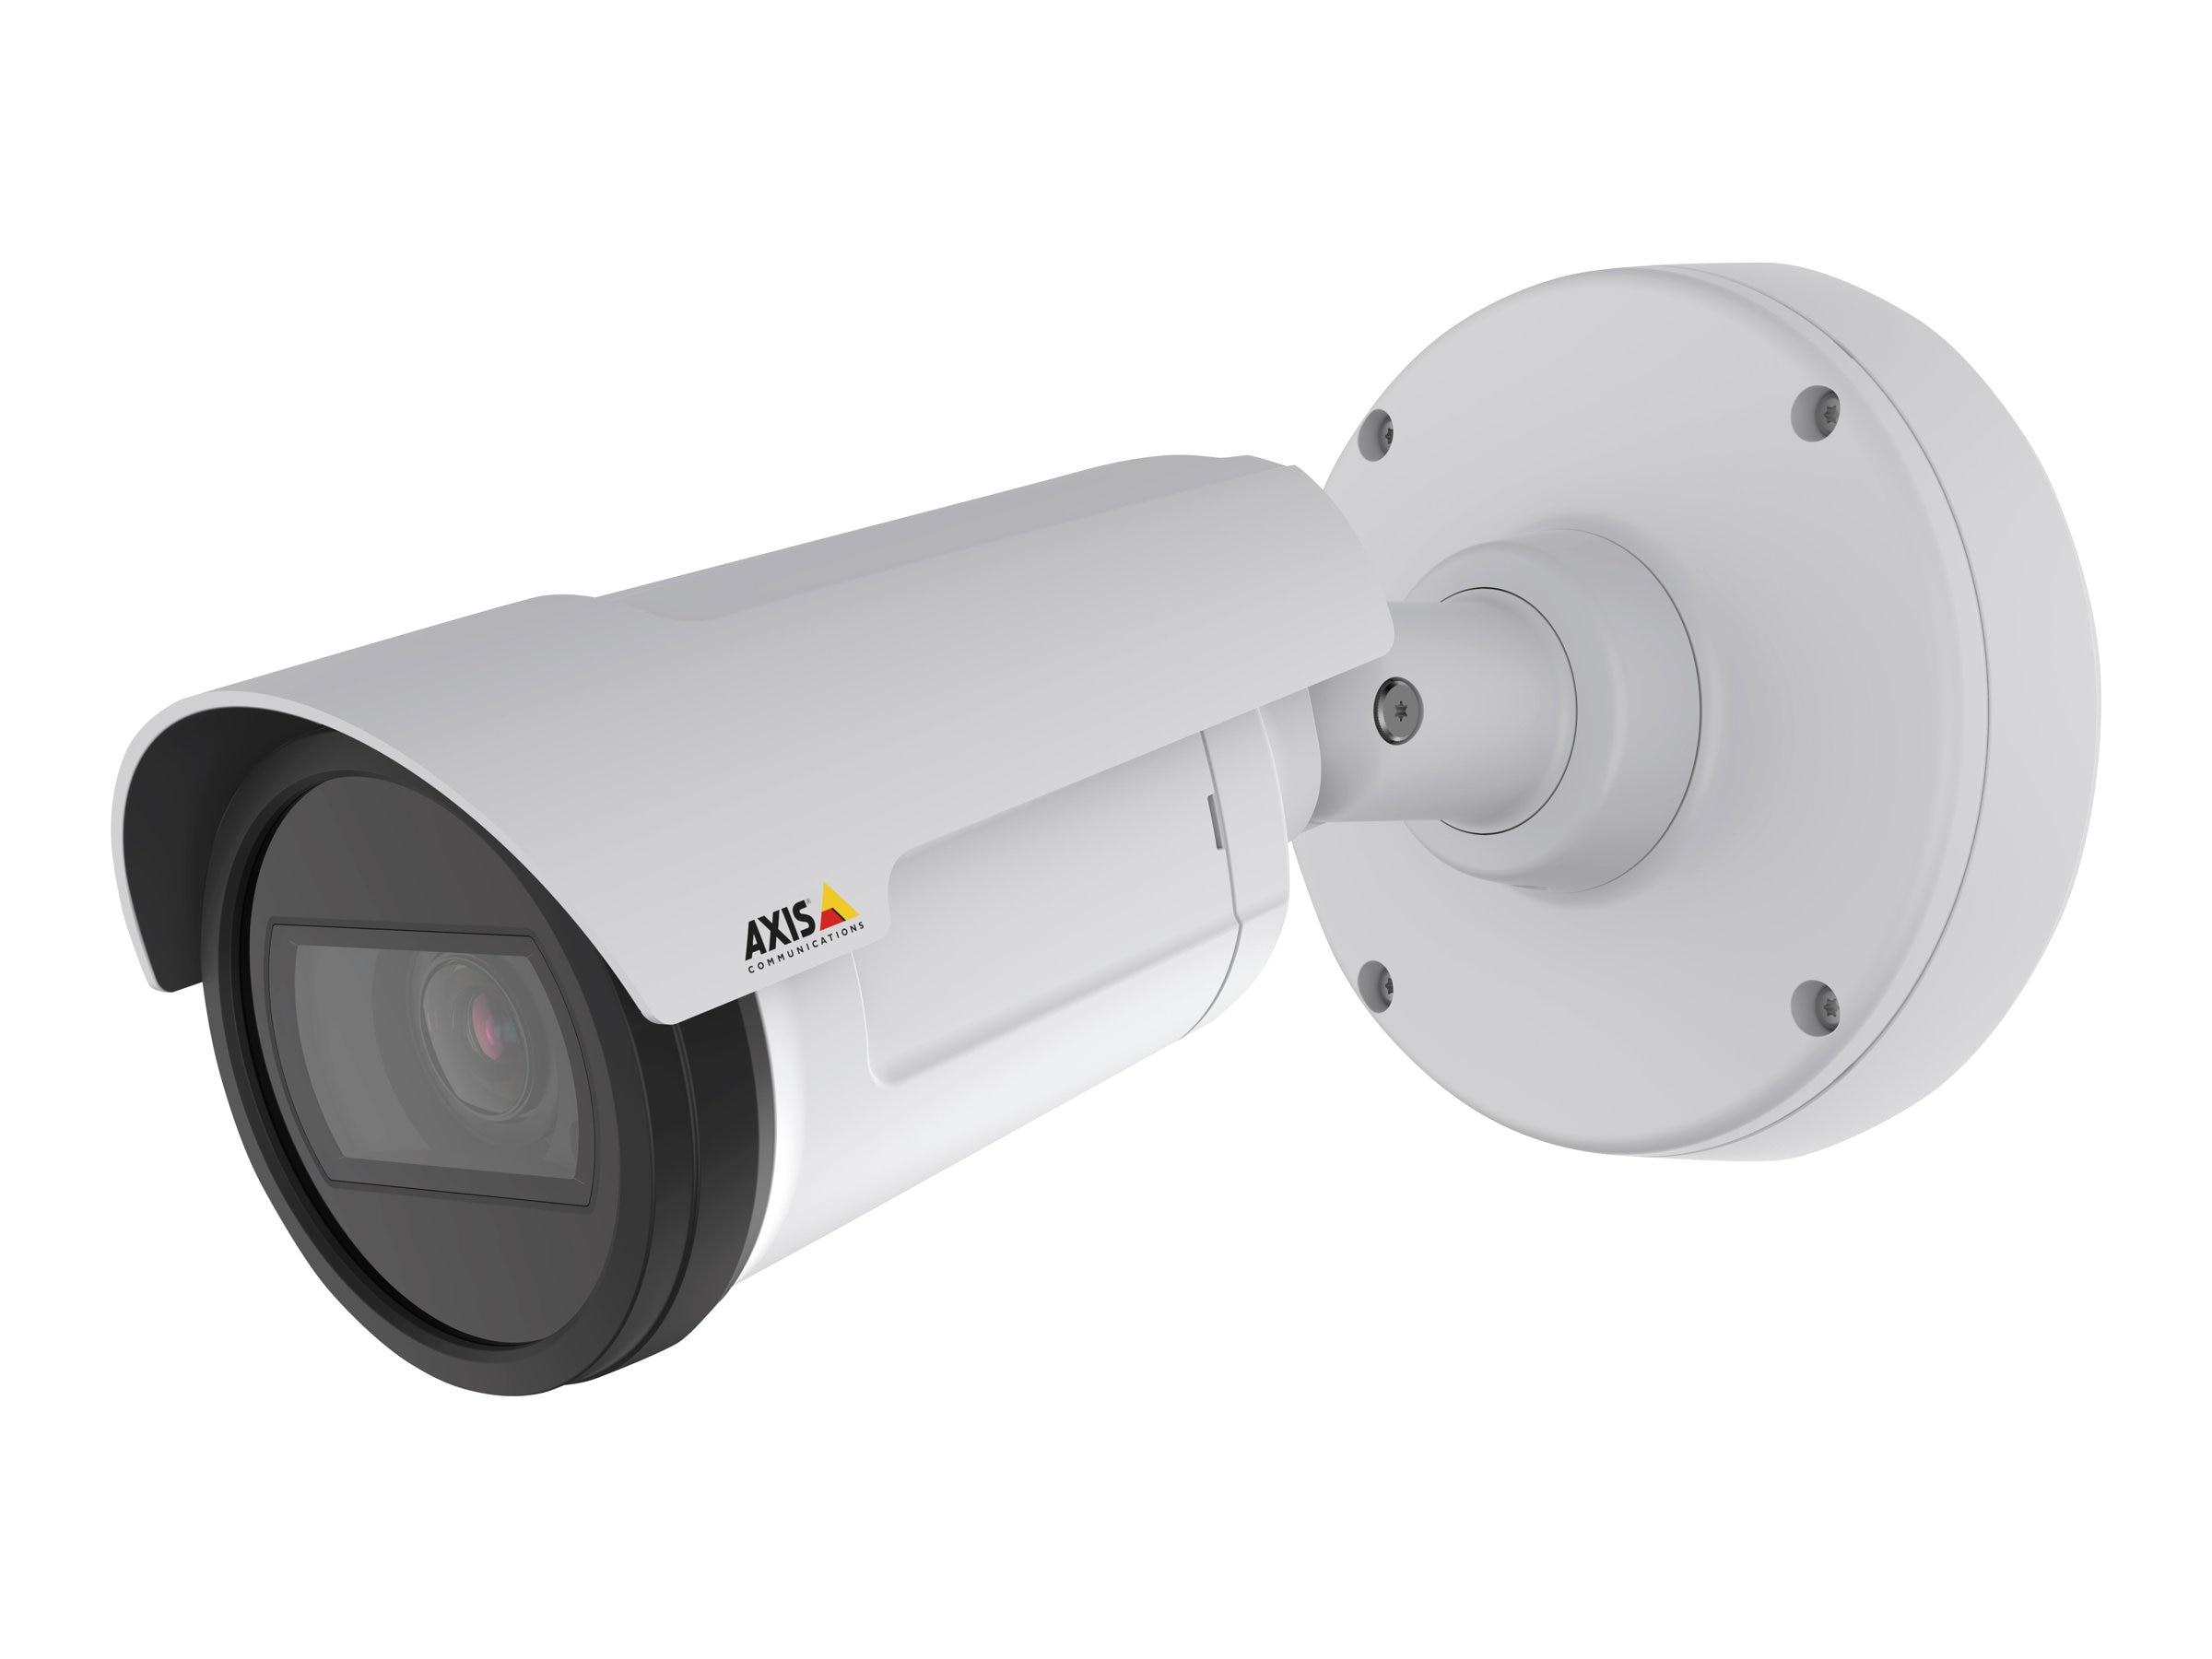 Axis P1425-LE Outdoor Fixed Network IR Camera with 3-10.5mm Lens